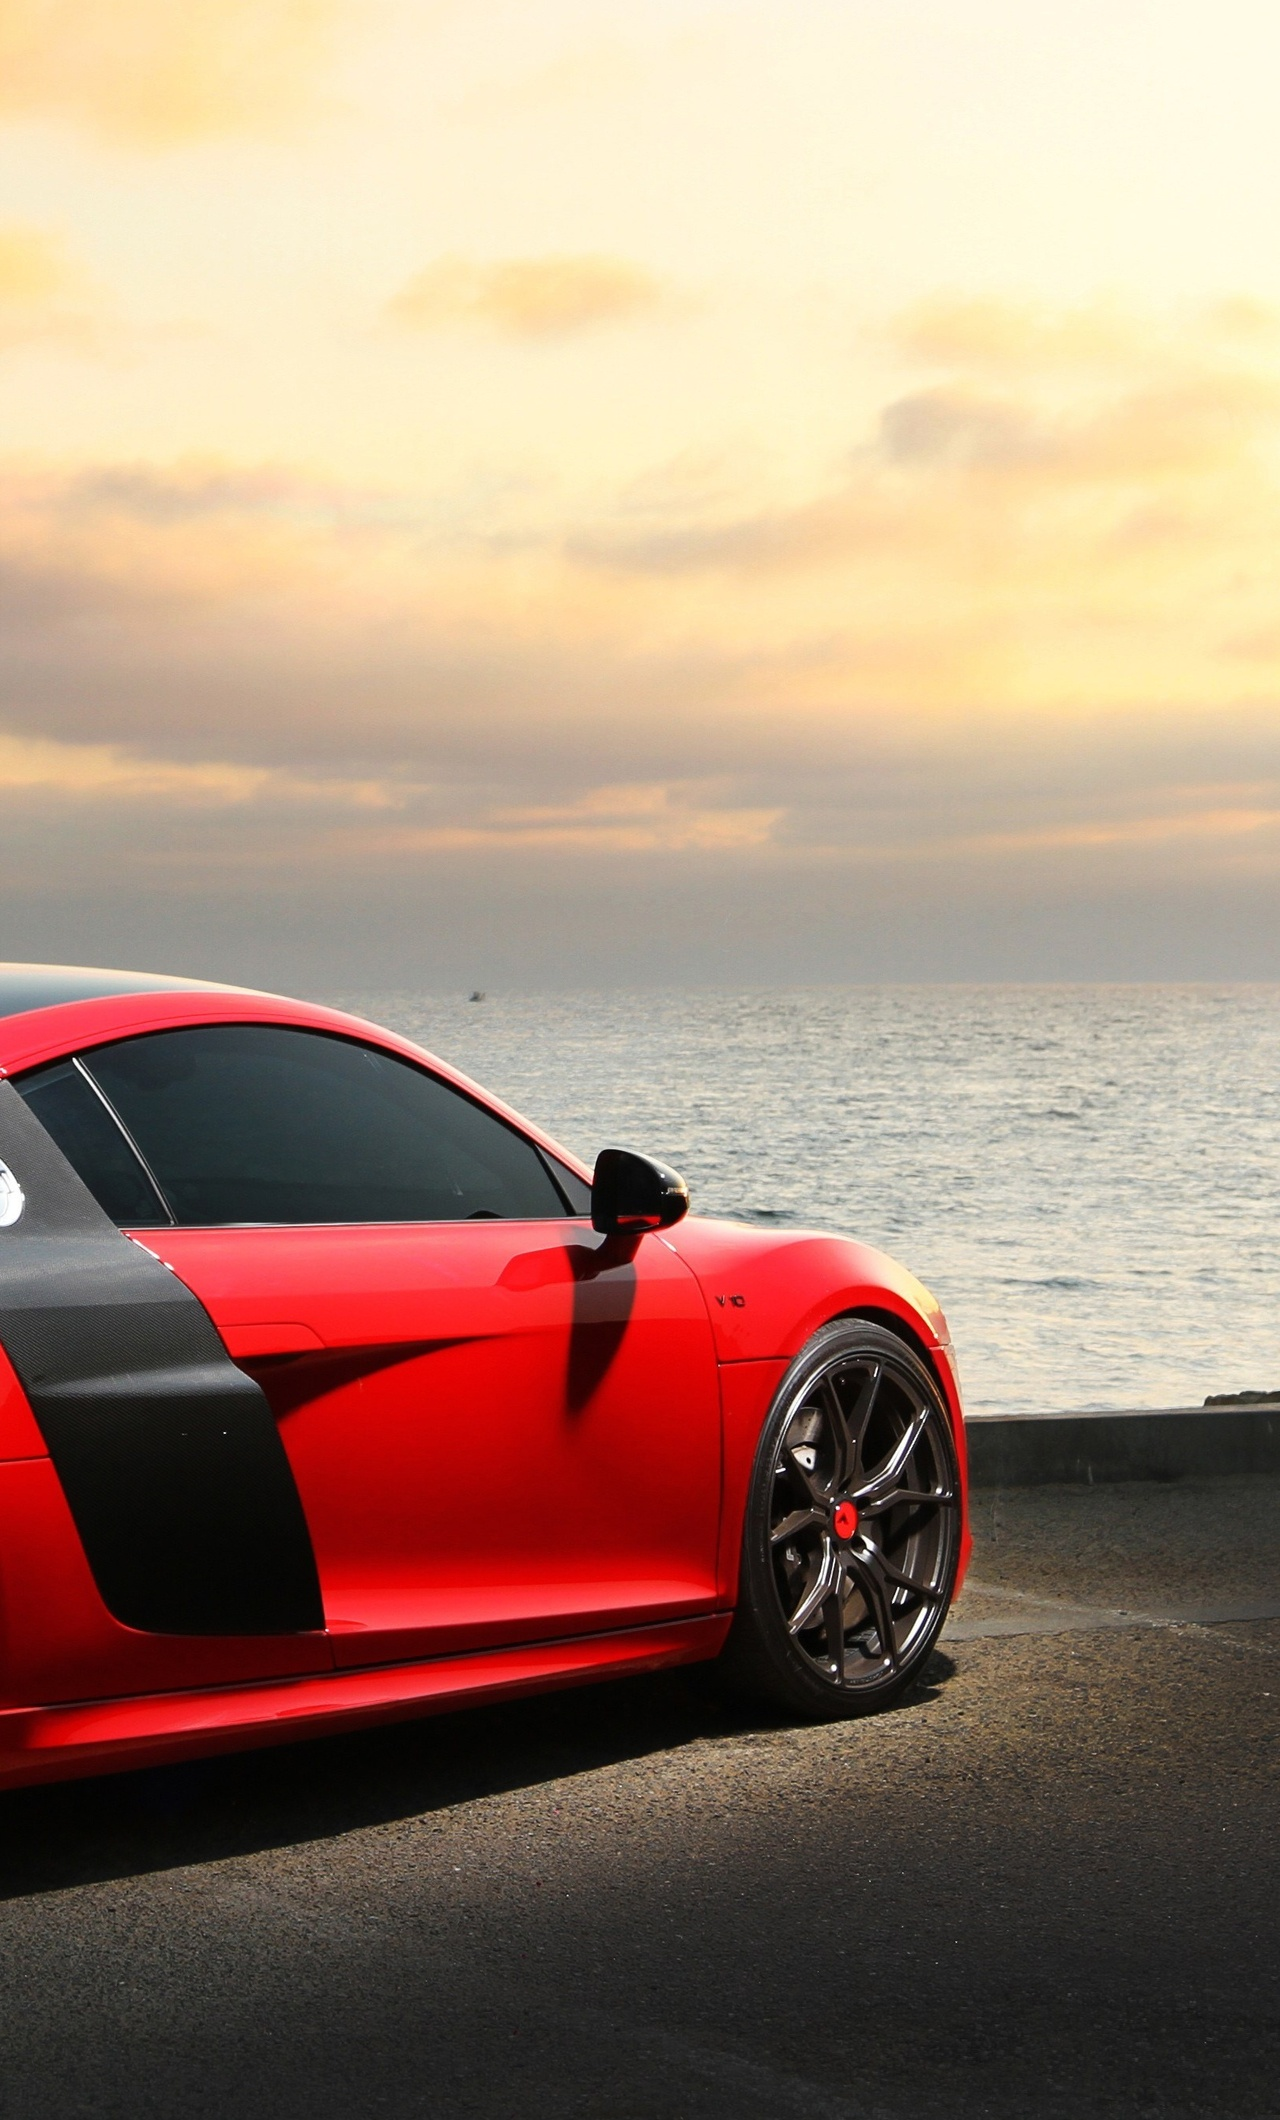 1280x2120 Audi R8 New 2019 Iphone 6 Hd 4k Wallpapers Images